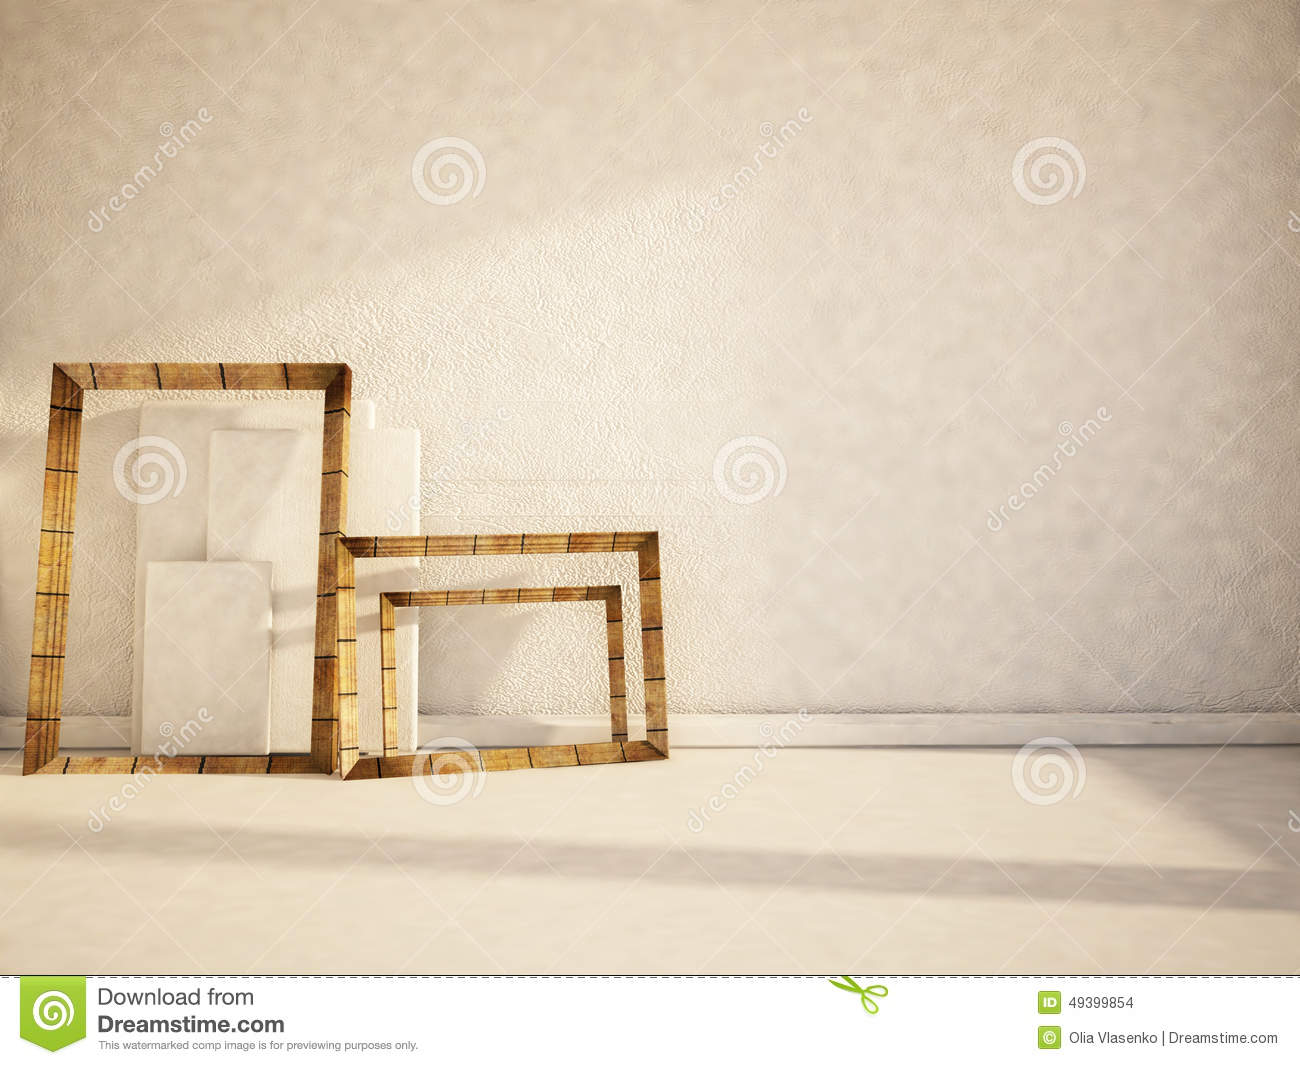 many frames and canvases on the floor stock illustration  image  - many frames and canvases on the floor stock illustration